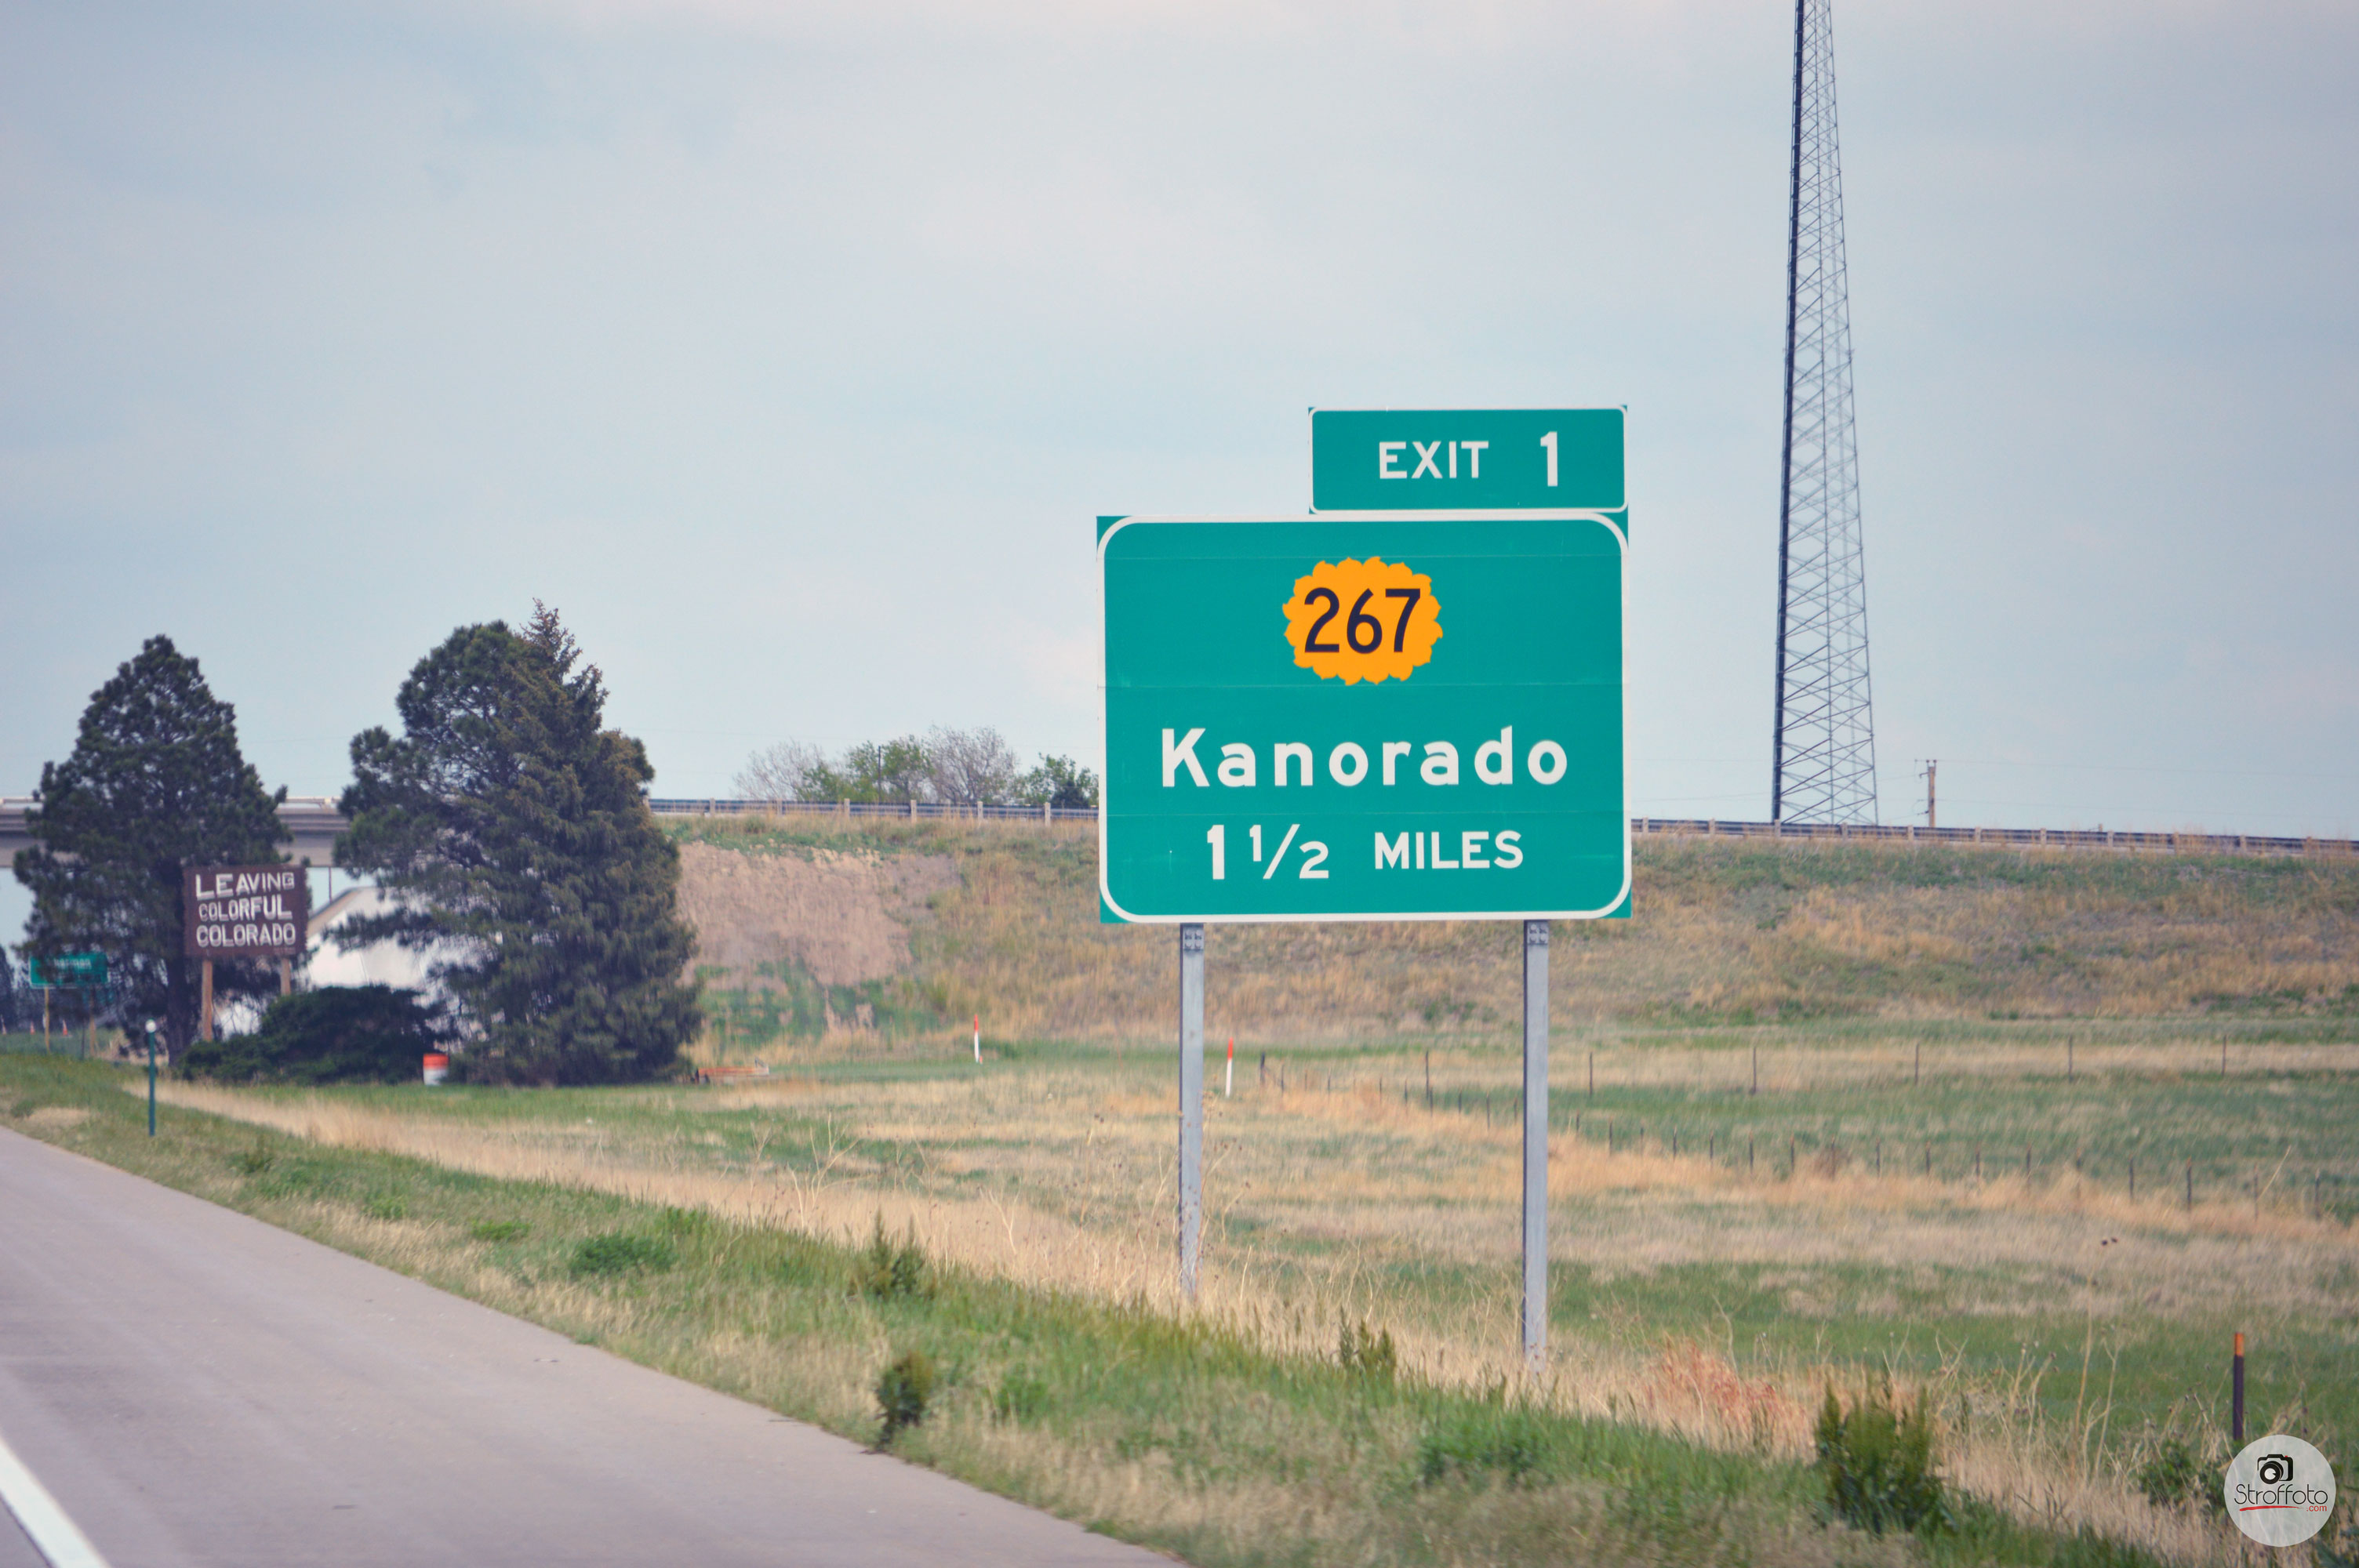 Day 24 - Road Trip 2014